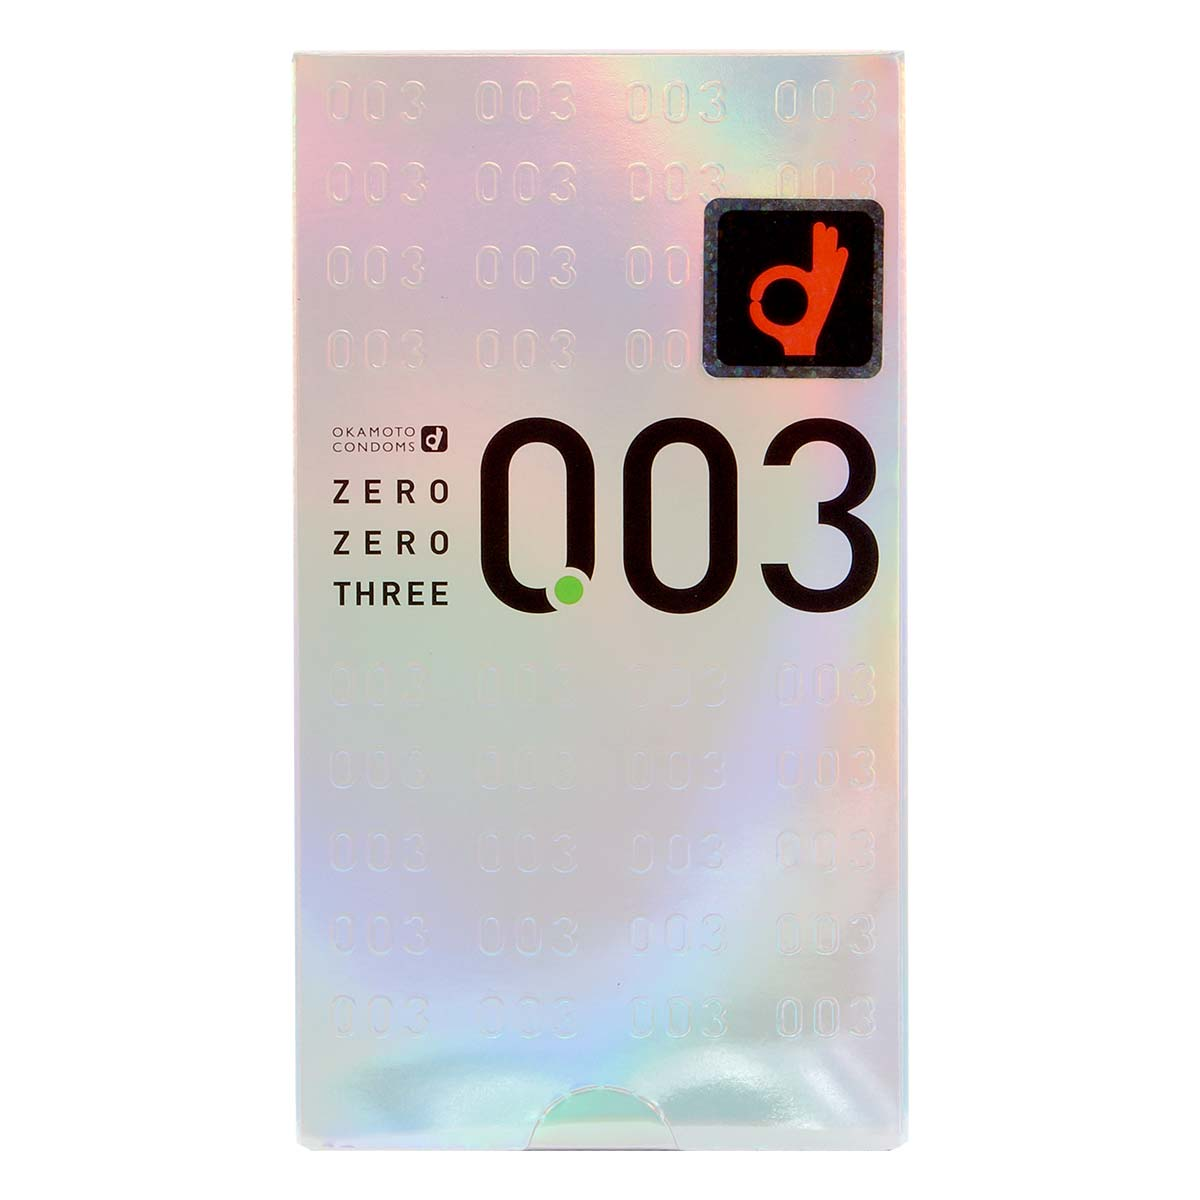 Zero Zero Three 0.03 (Japan Edition) 12's Pack Latex Condom